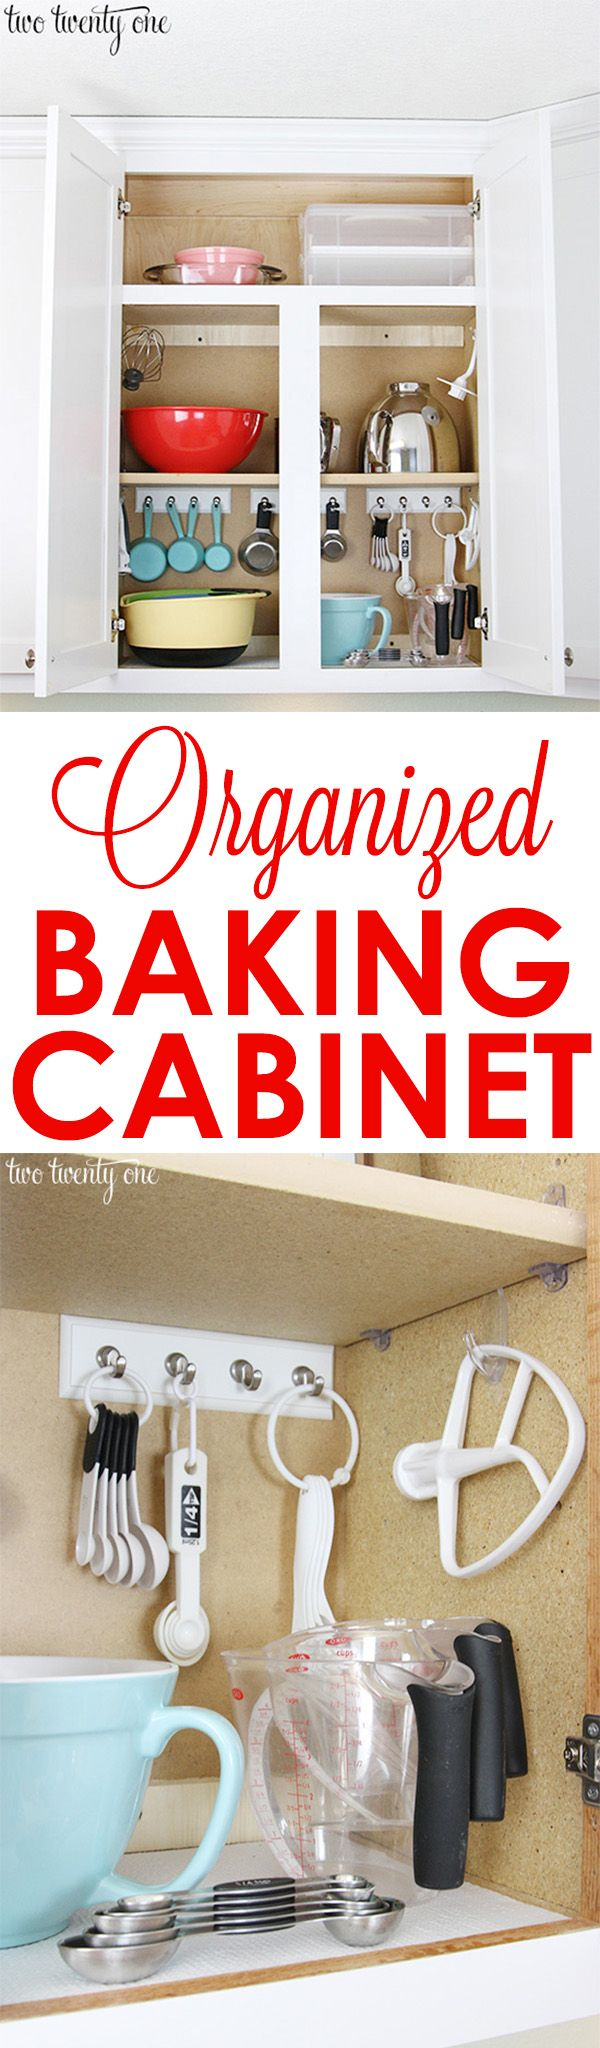 Kitchen Shelf Organization Organized Baking Cabinet Cabinets The Hook And Spoons